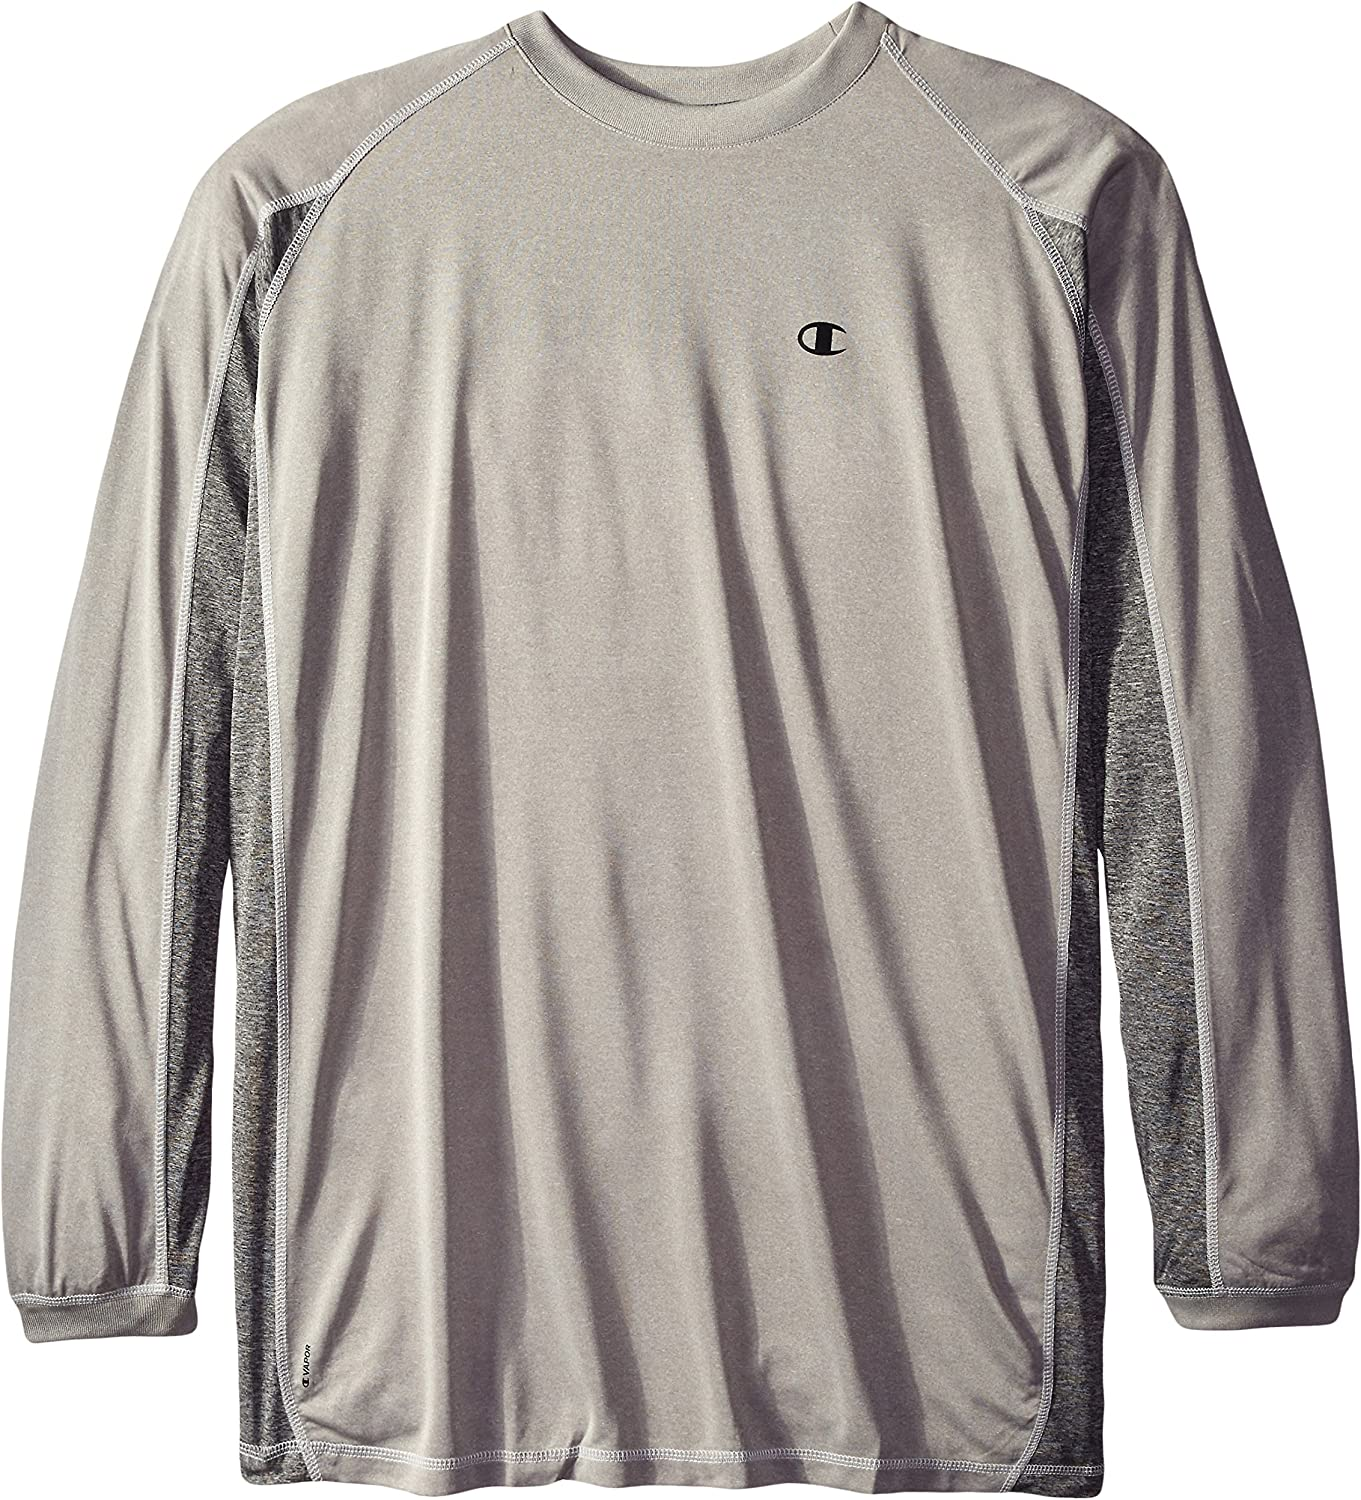 15d0c832aa8a Champion Mens Big & Tall Tall Tall Long-Sleeve Pieced Active Crew T-Shirt  Shirt a4356f